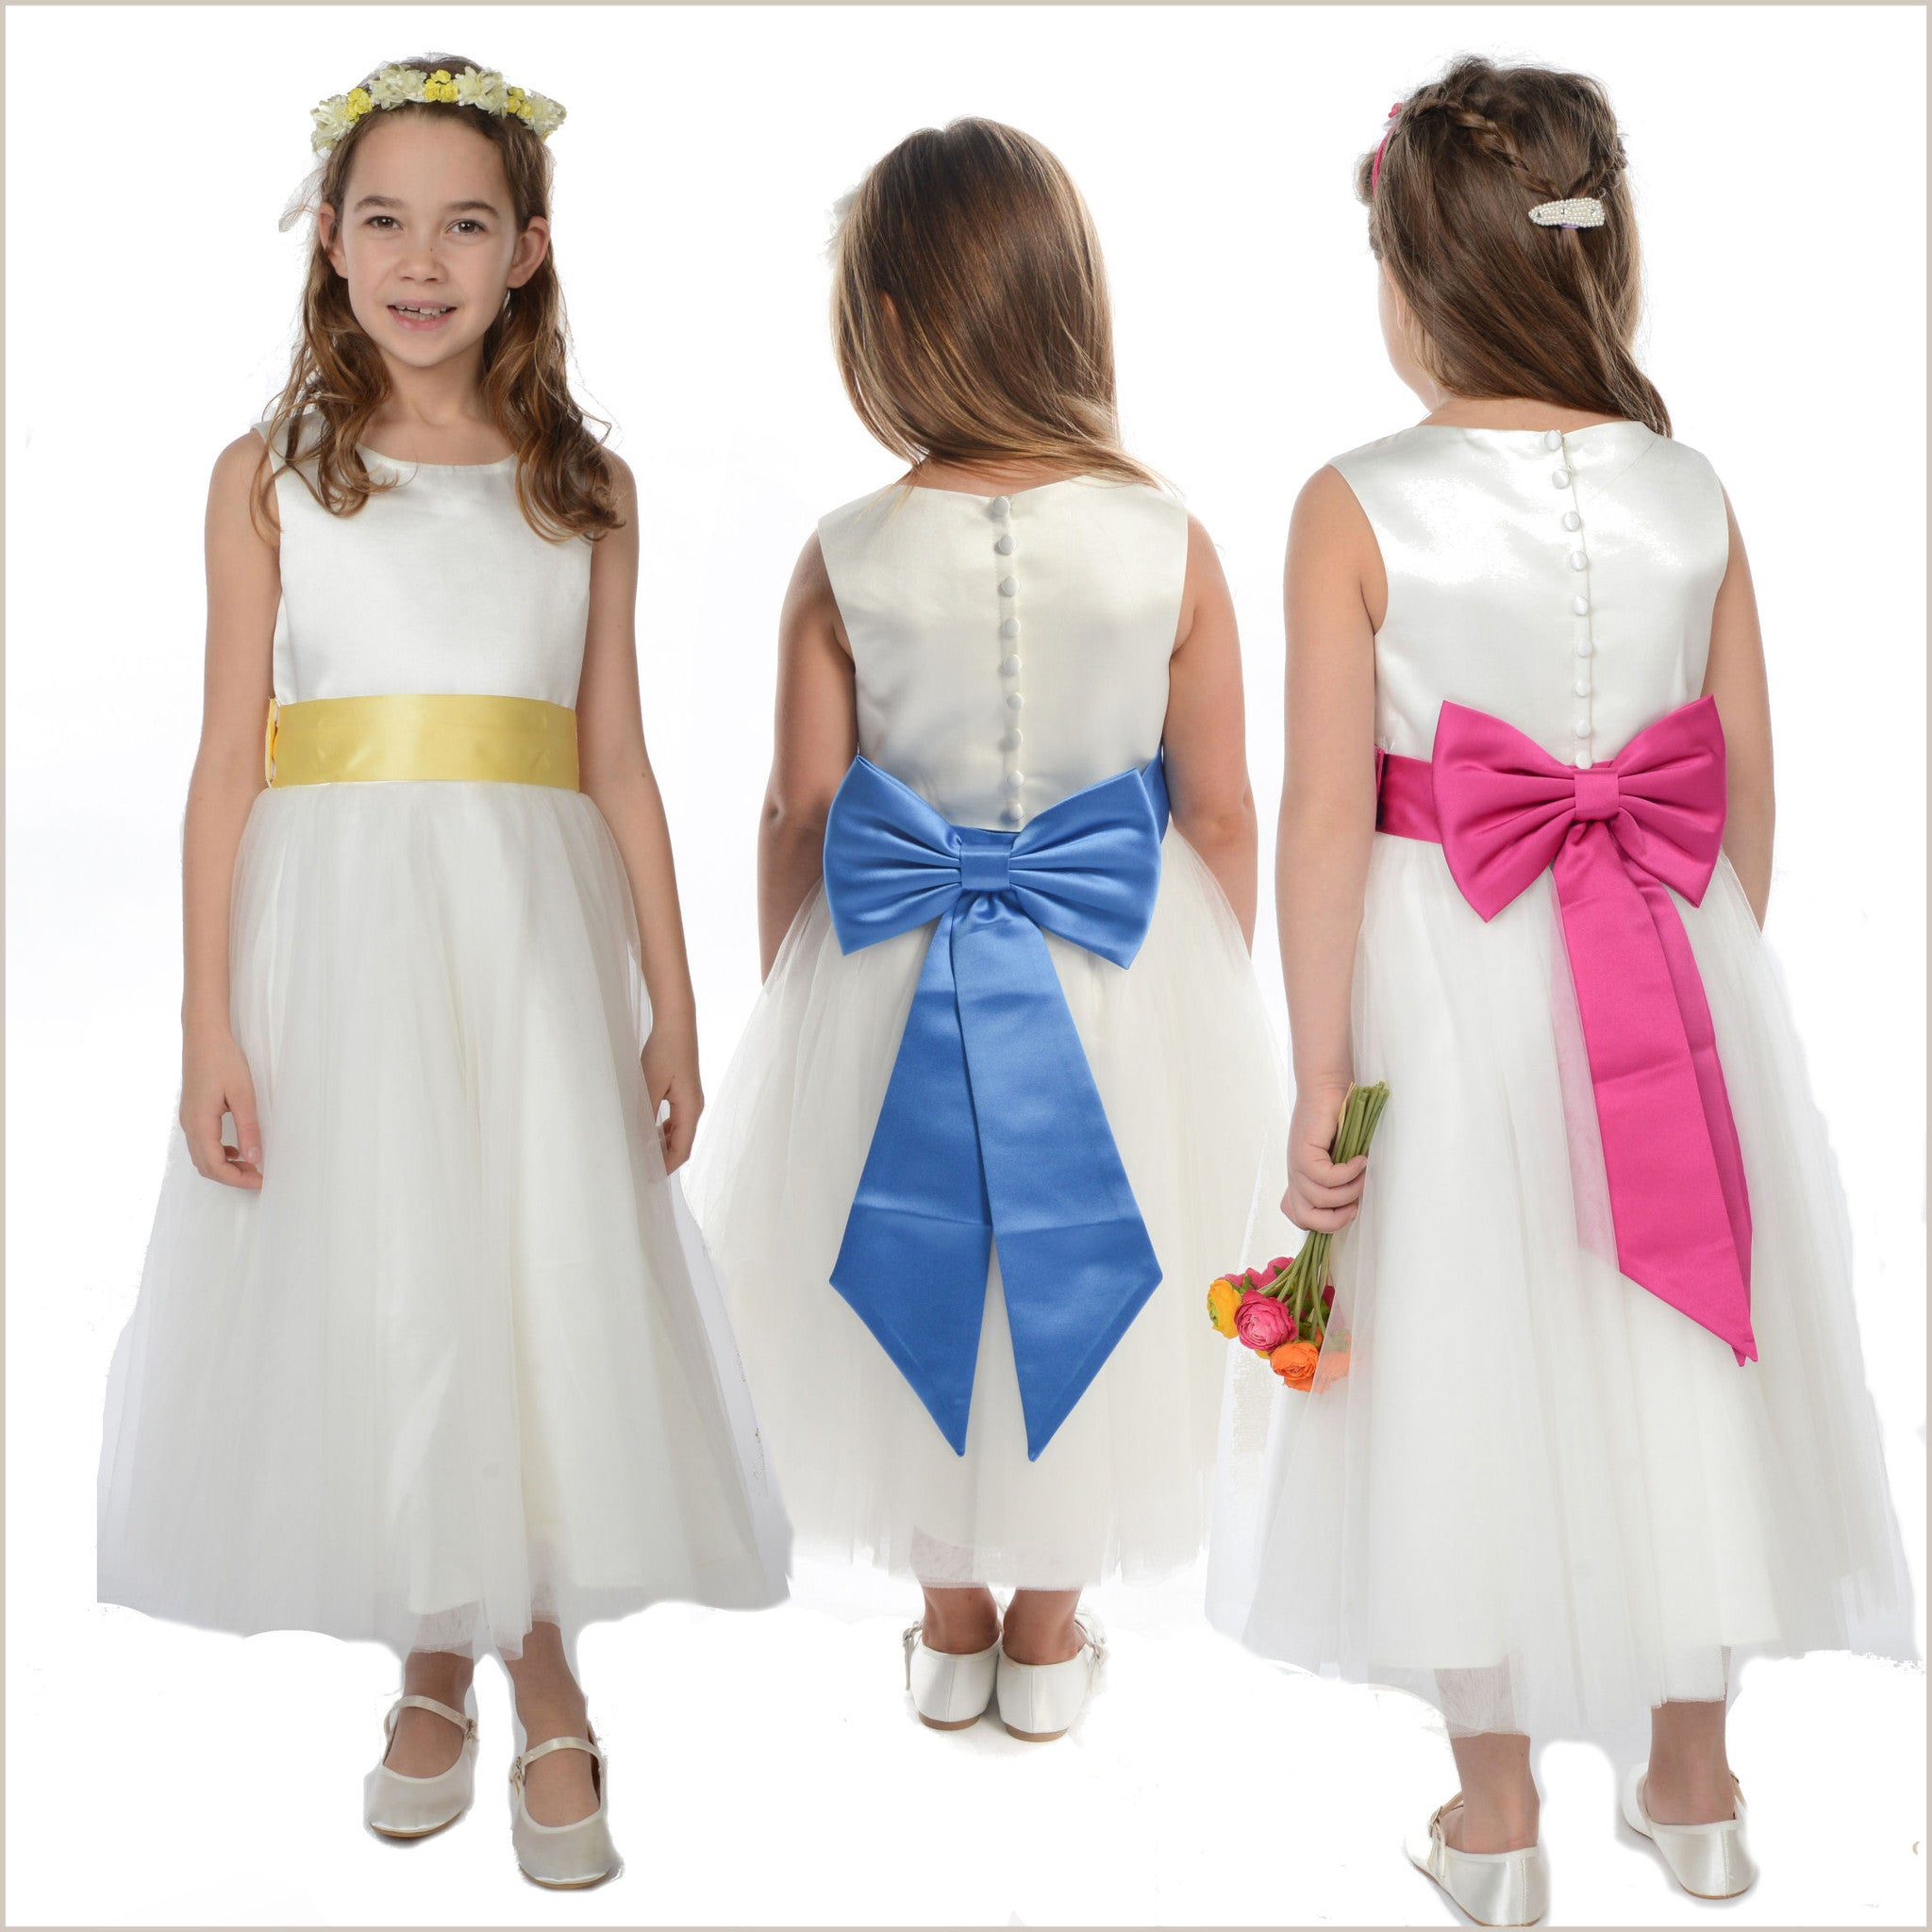 Pre Tied Bow Or Bows Sashes For Bridesmaid And Flower Girl Dresses